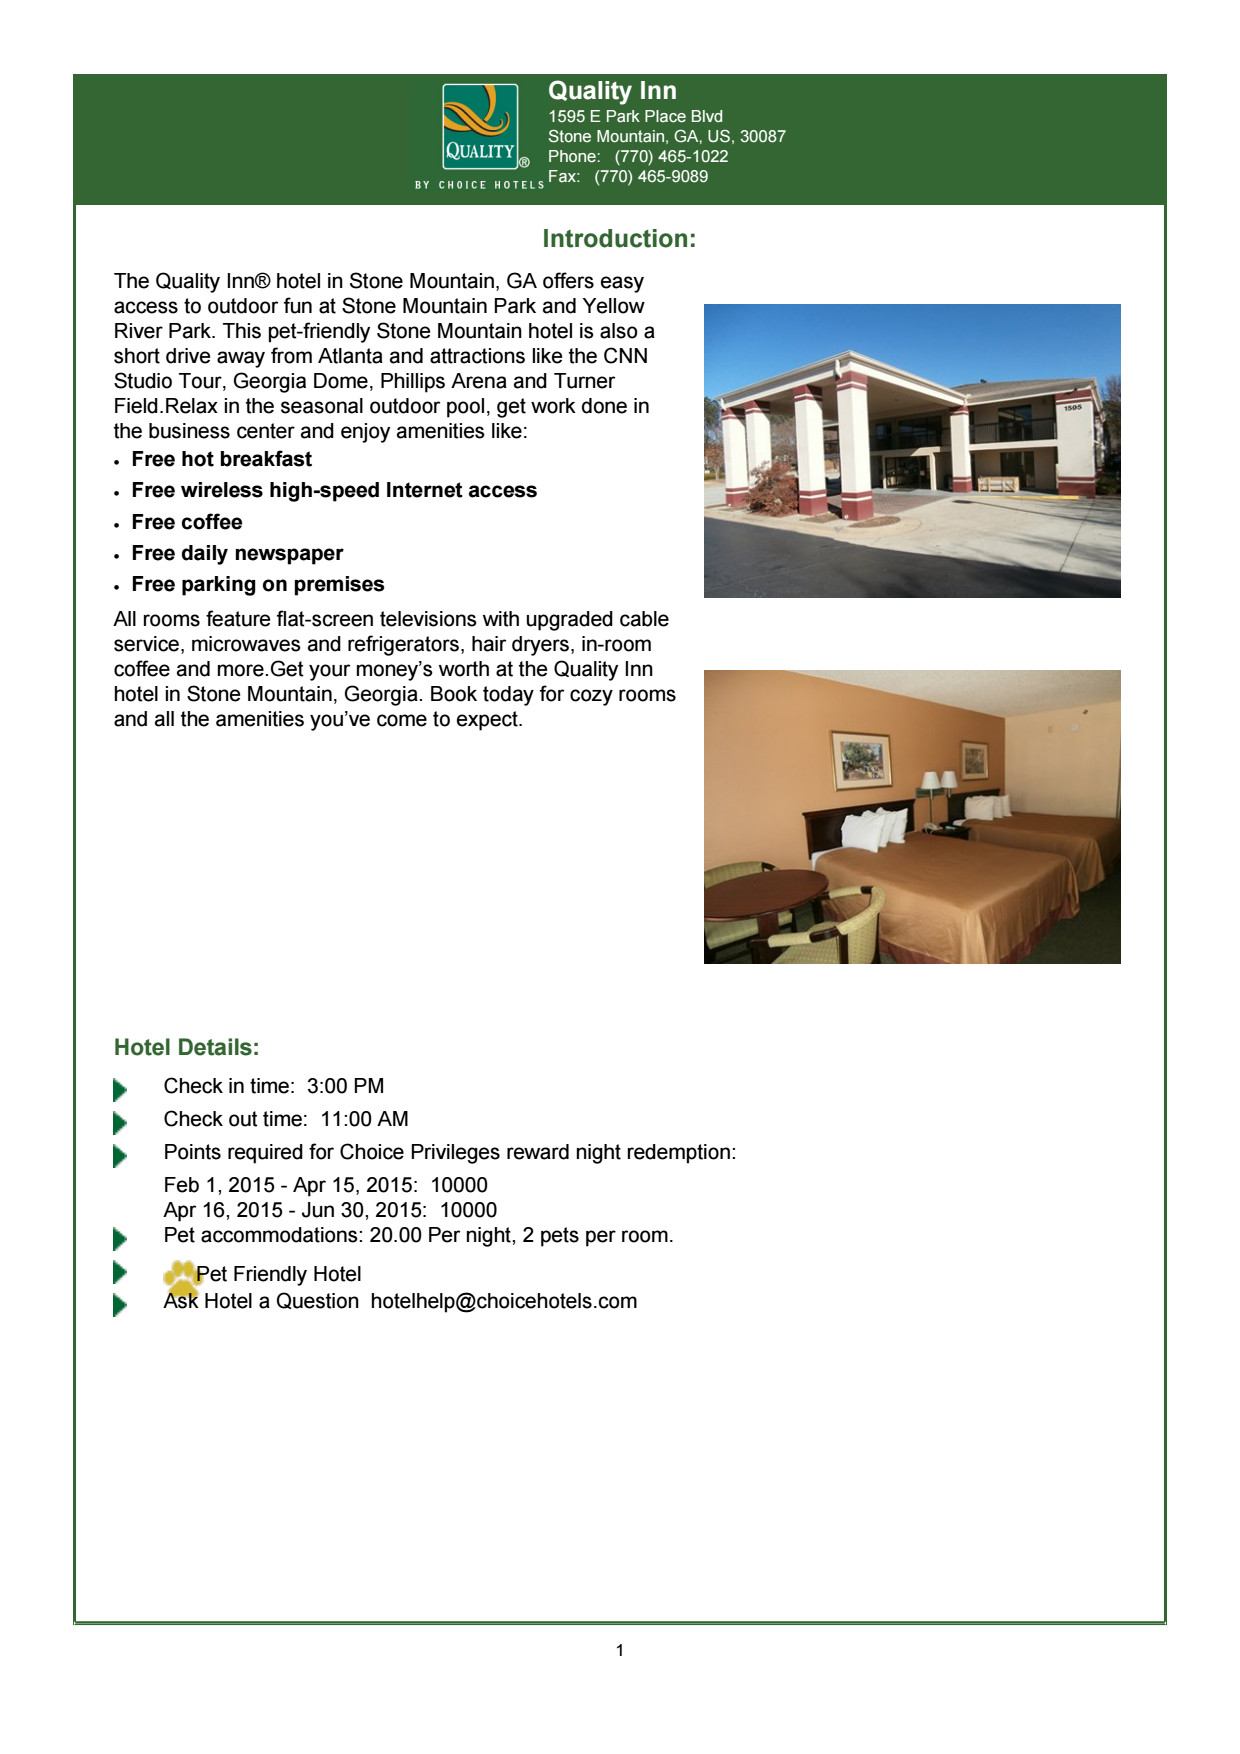 Quality Inn, Stone Mountain: Hotel Brochure